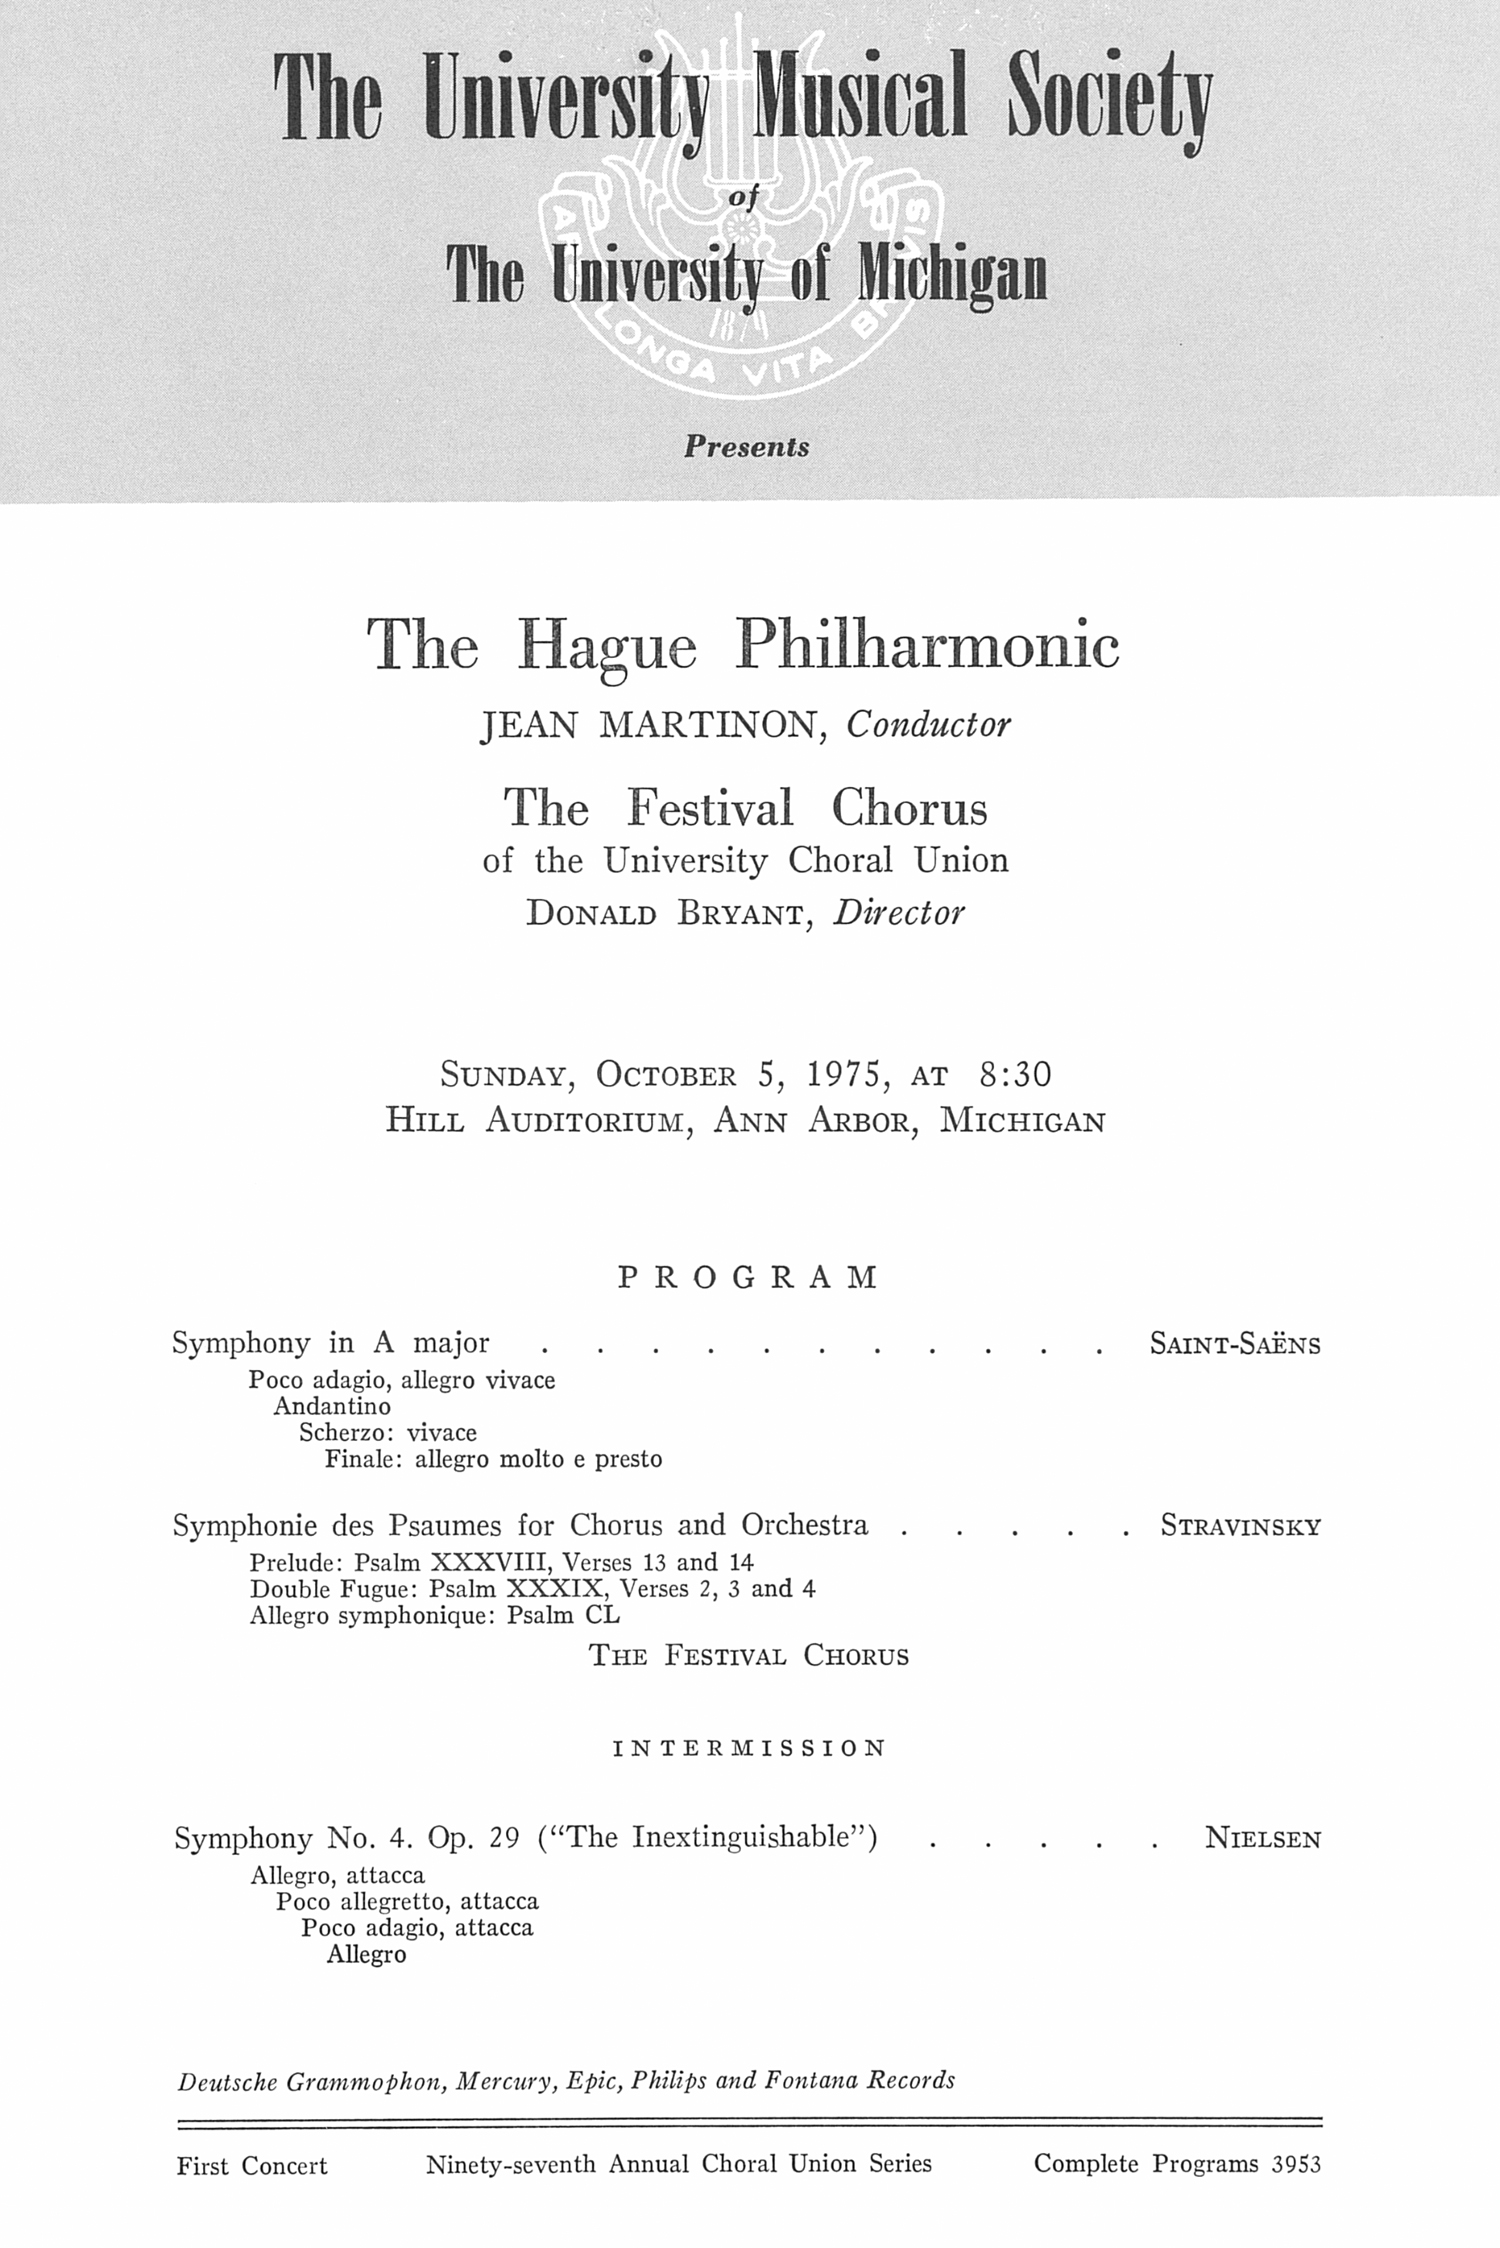 UMS Concert Program, October 5, 1975: The Hague Philharmonic -- Jean Martinon image